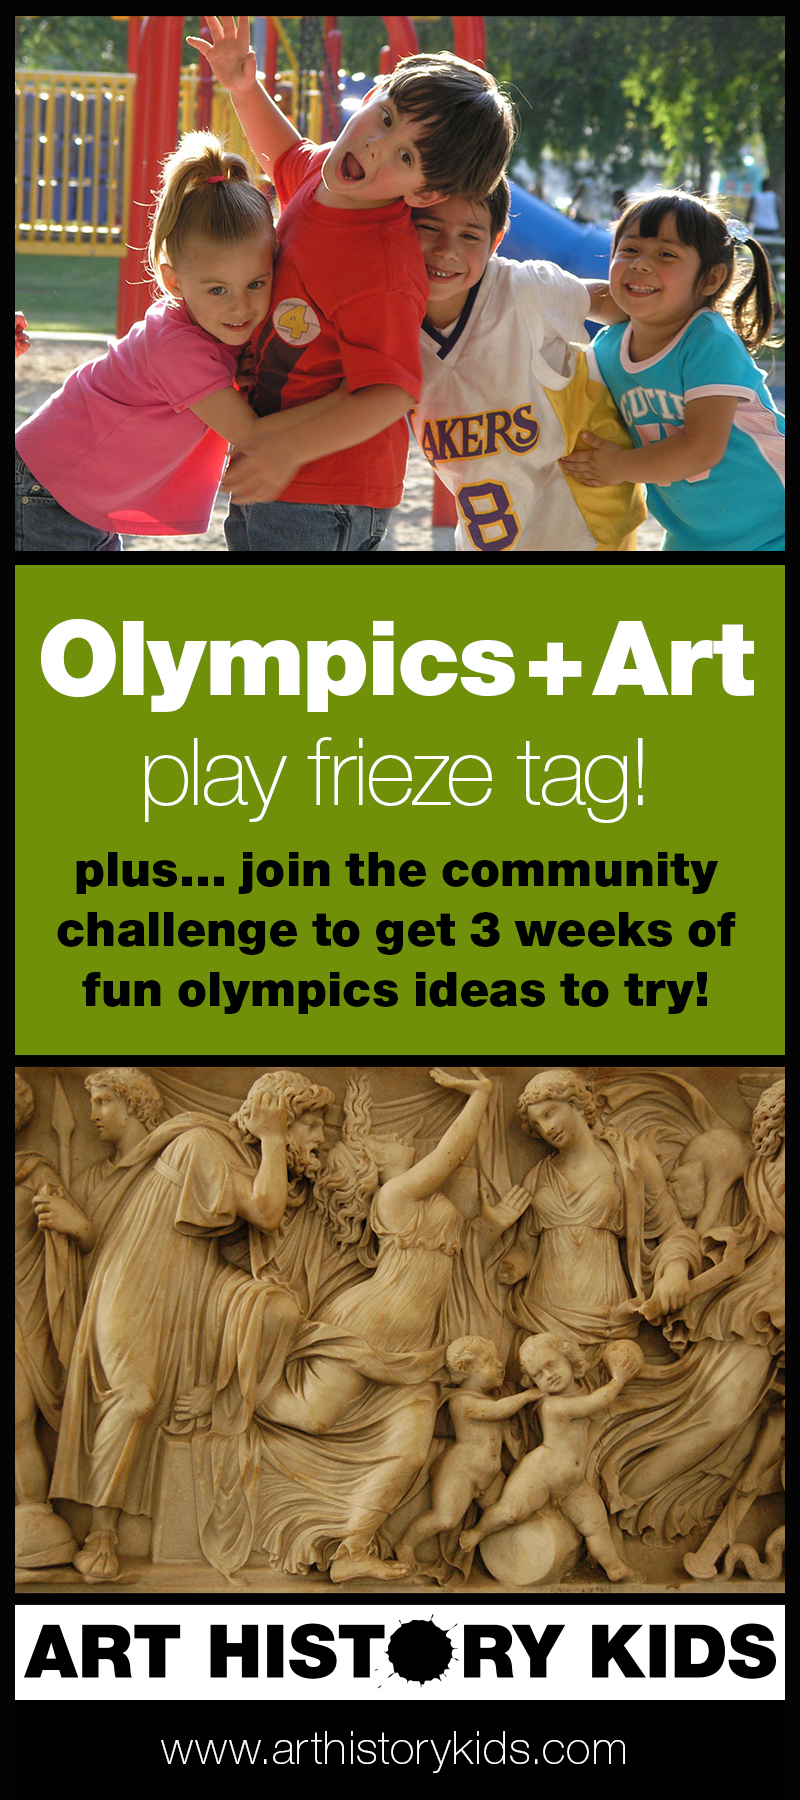 Invite your kids to get into the spirit of the olympics with this fun game! Frieze tag combines art history and the olympics in a fun and memorable way.